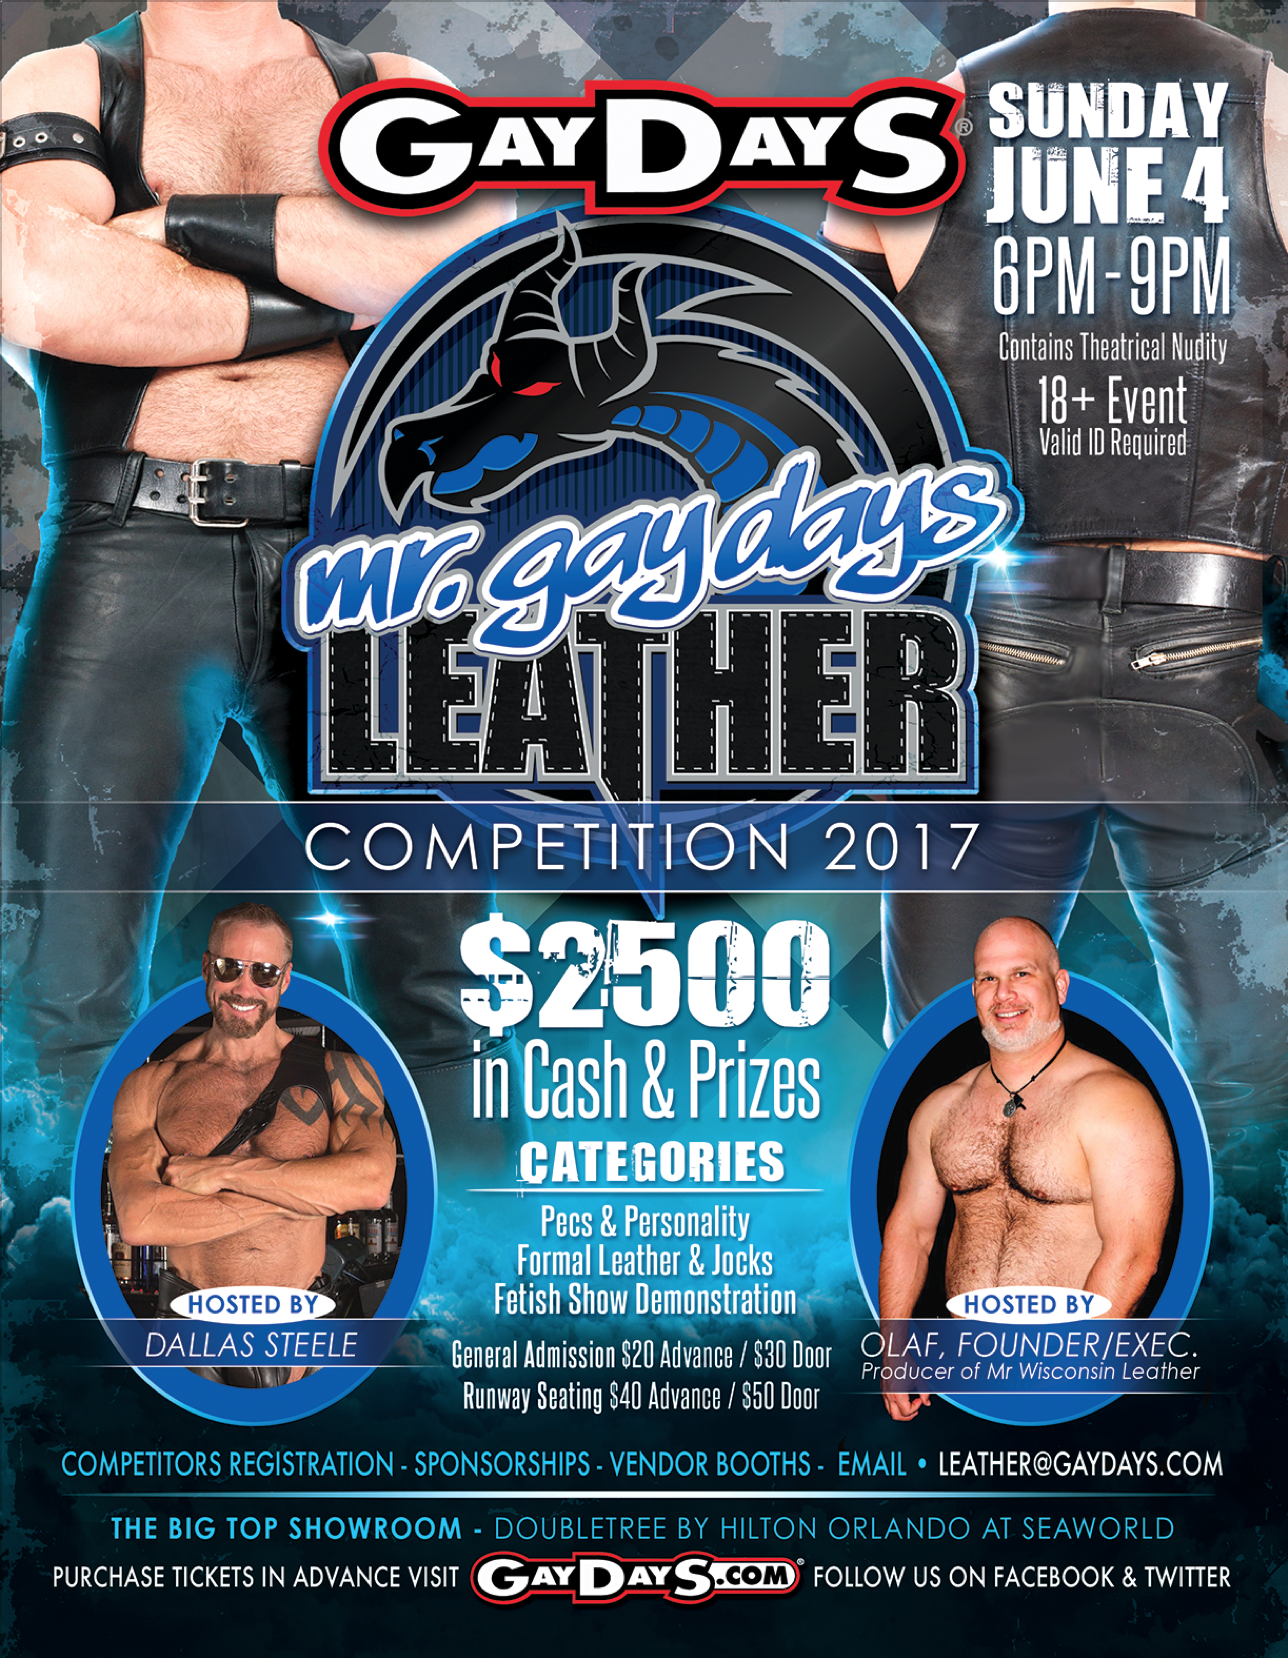 MR GAYDAYS® LEATHER